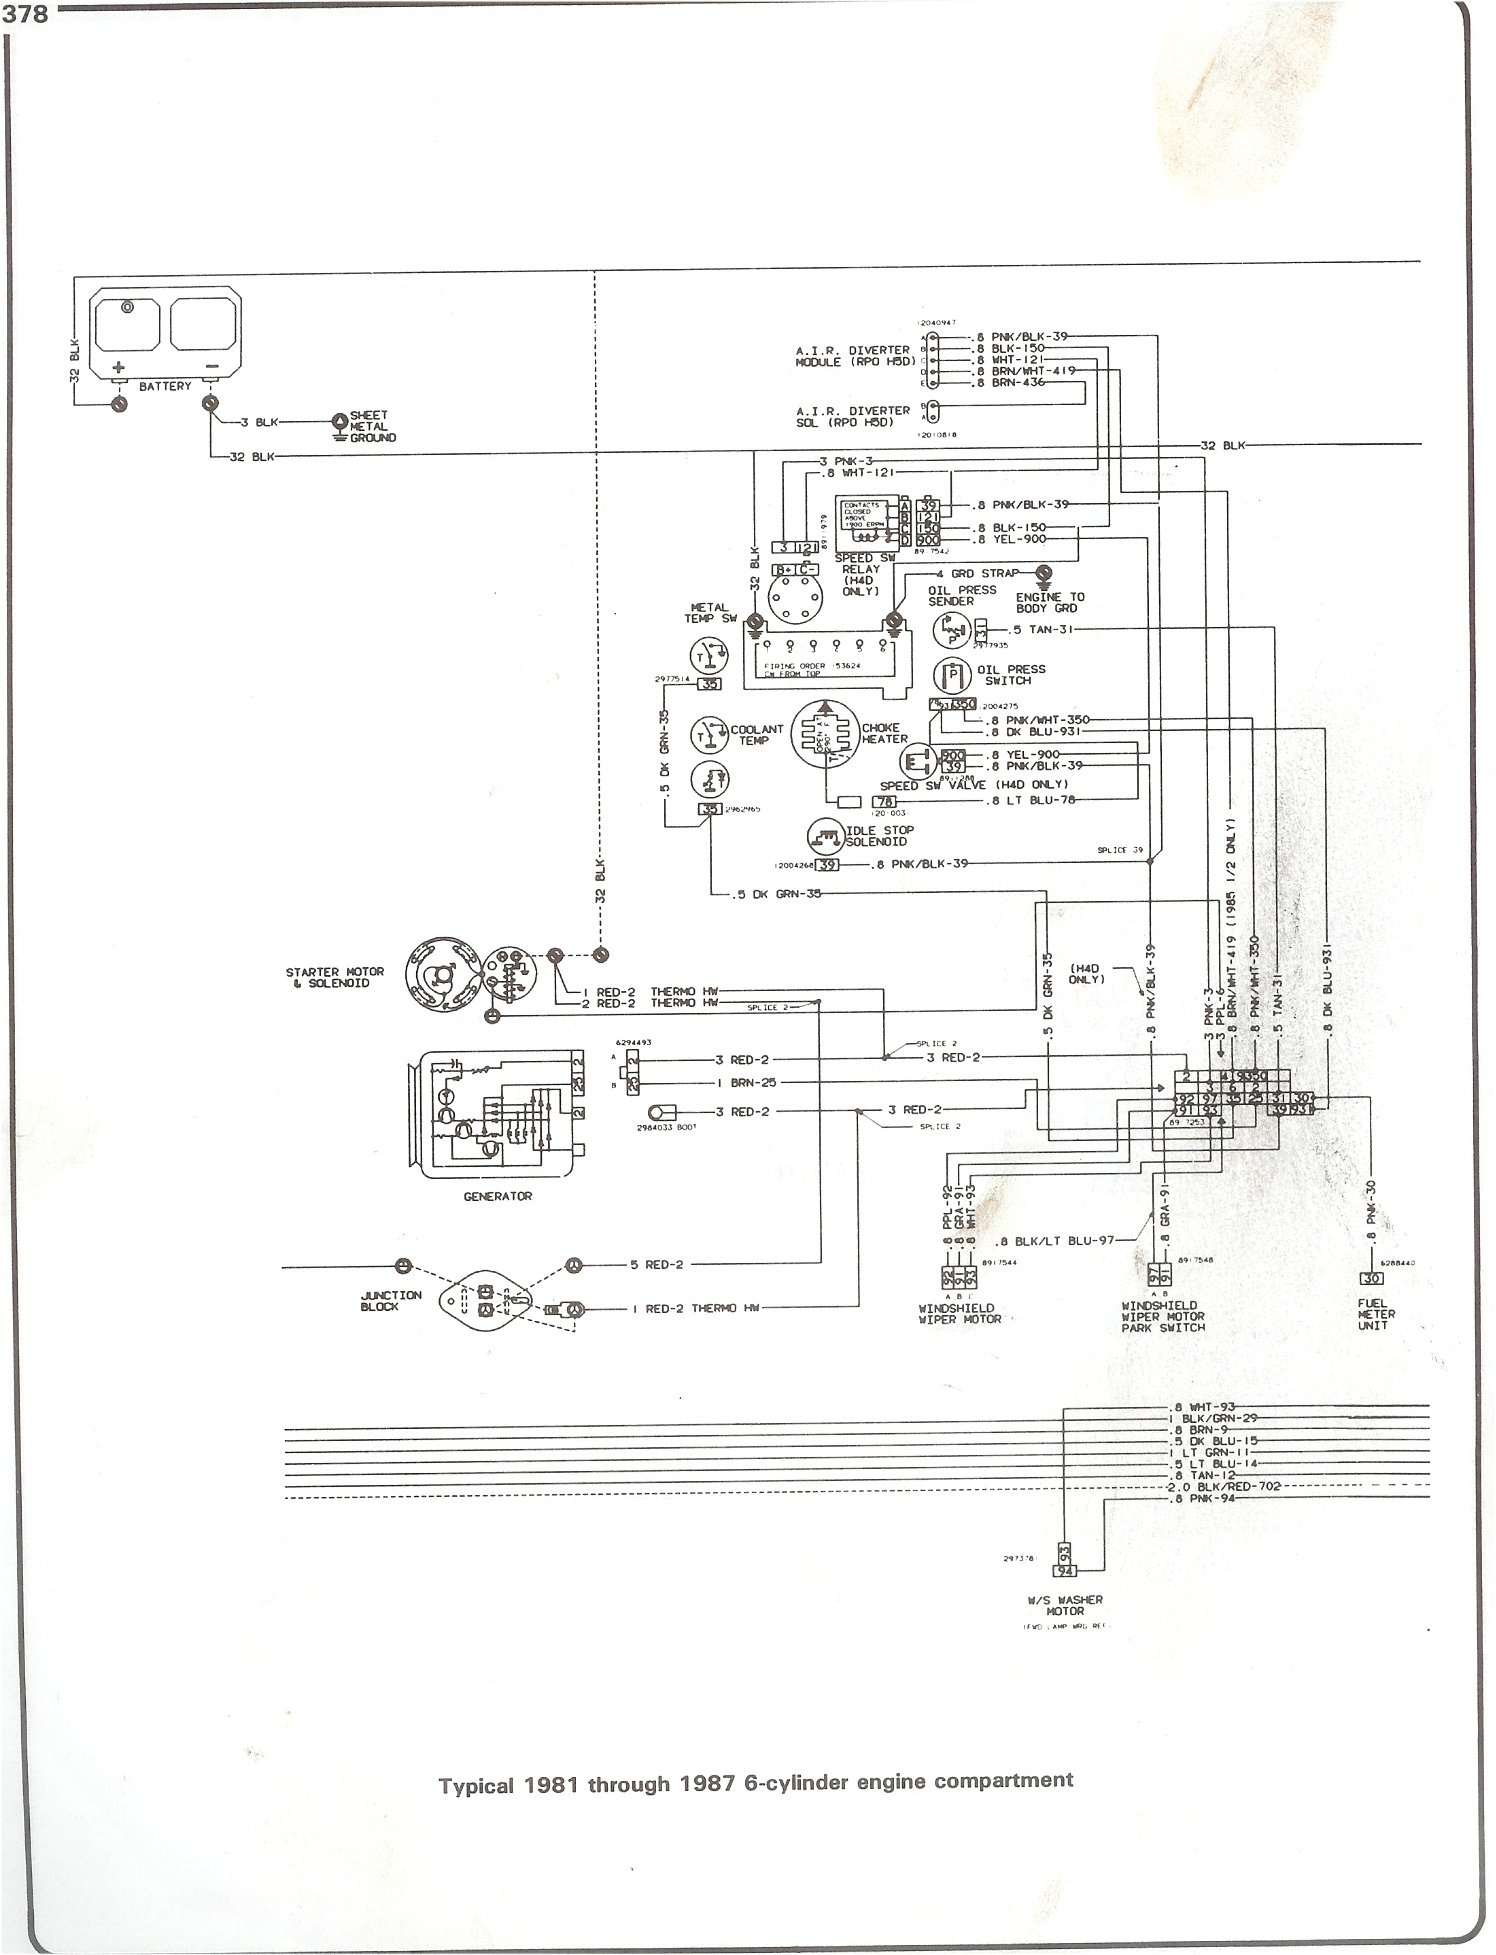 WRG-4838] 79 Chevy Truck Fuel Gauge Wiring Diagram